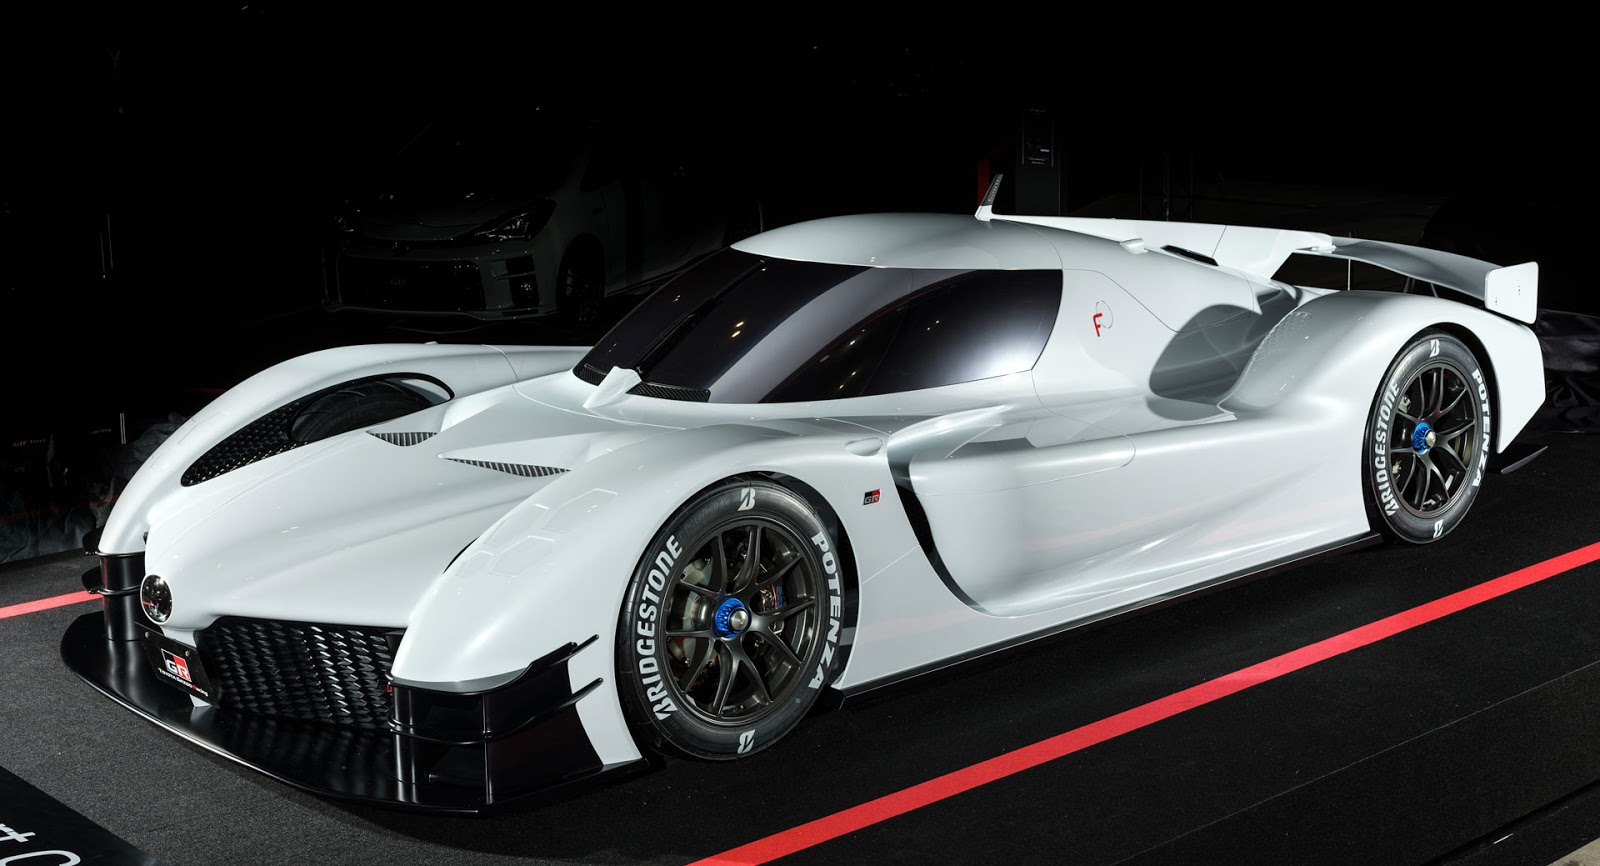 980-HP Toyota Concept Could Inspire Future Supercar